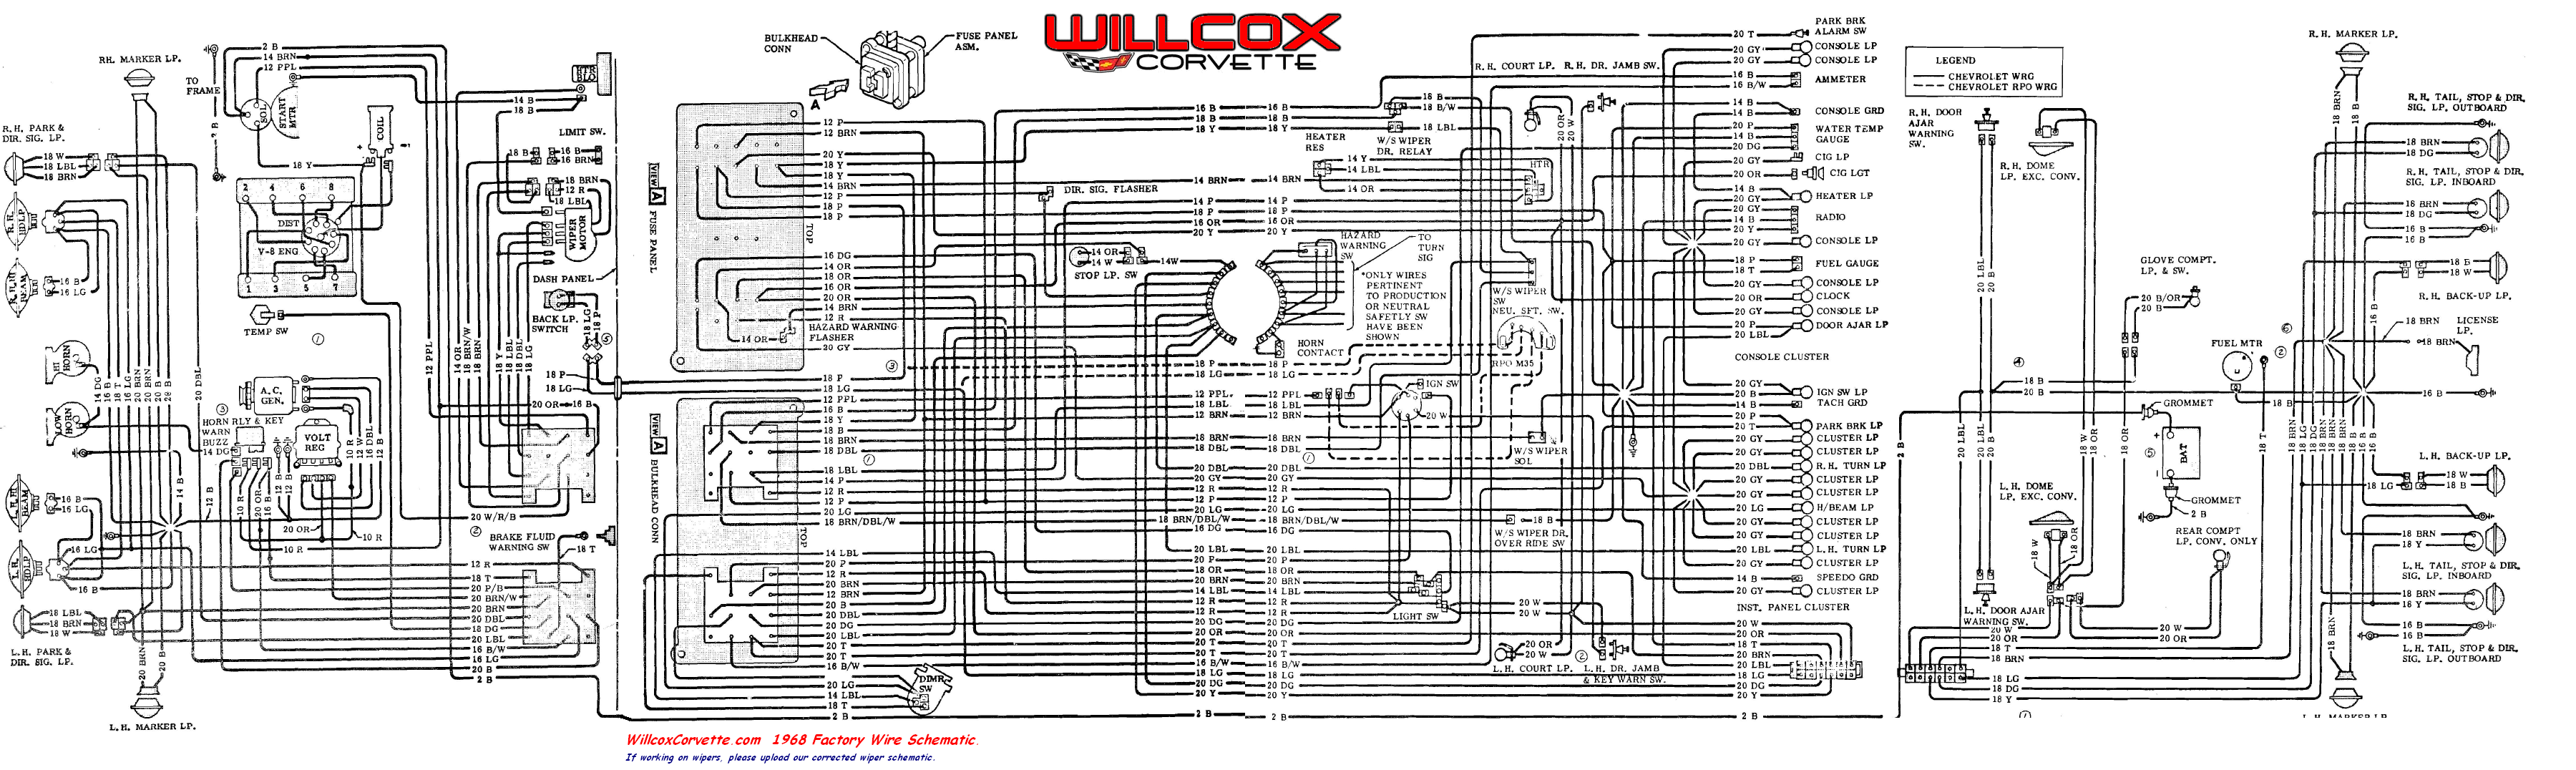 corvette wiring schematic corvette wiring diagram corvette wiring diagrams online 1968 corvette wiring diagram tracer schematic willcox corvette